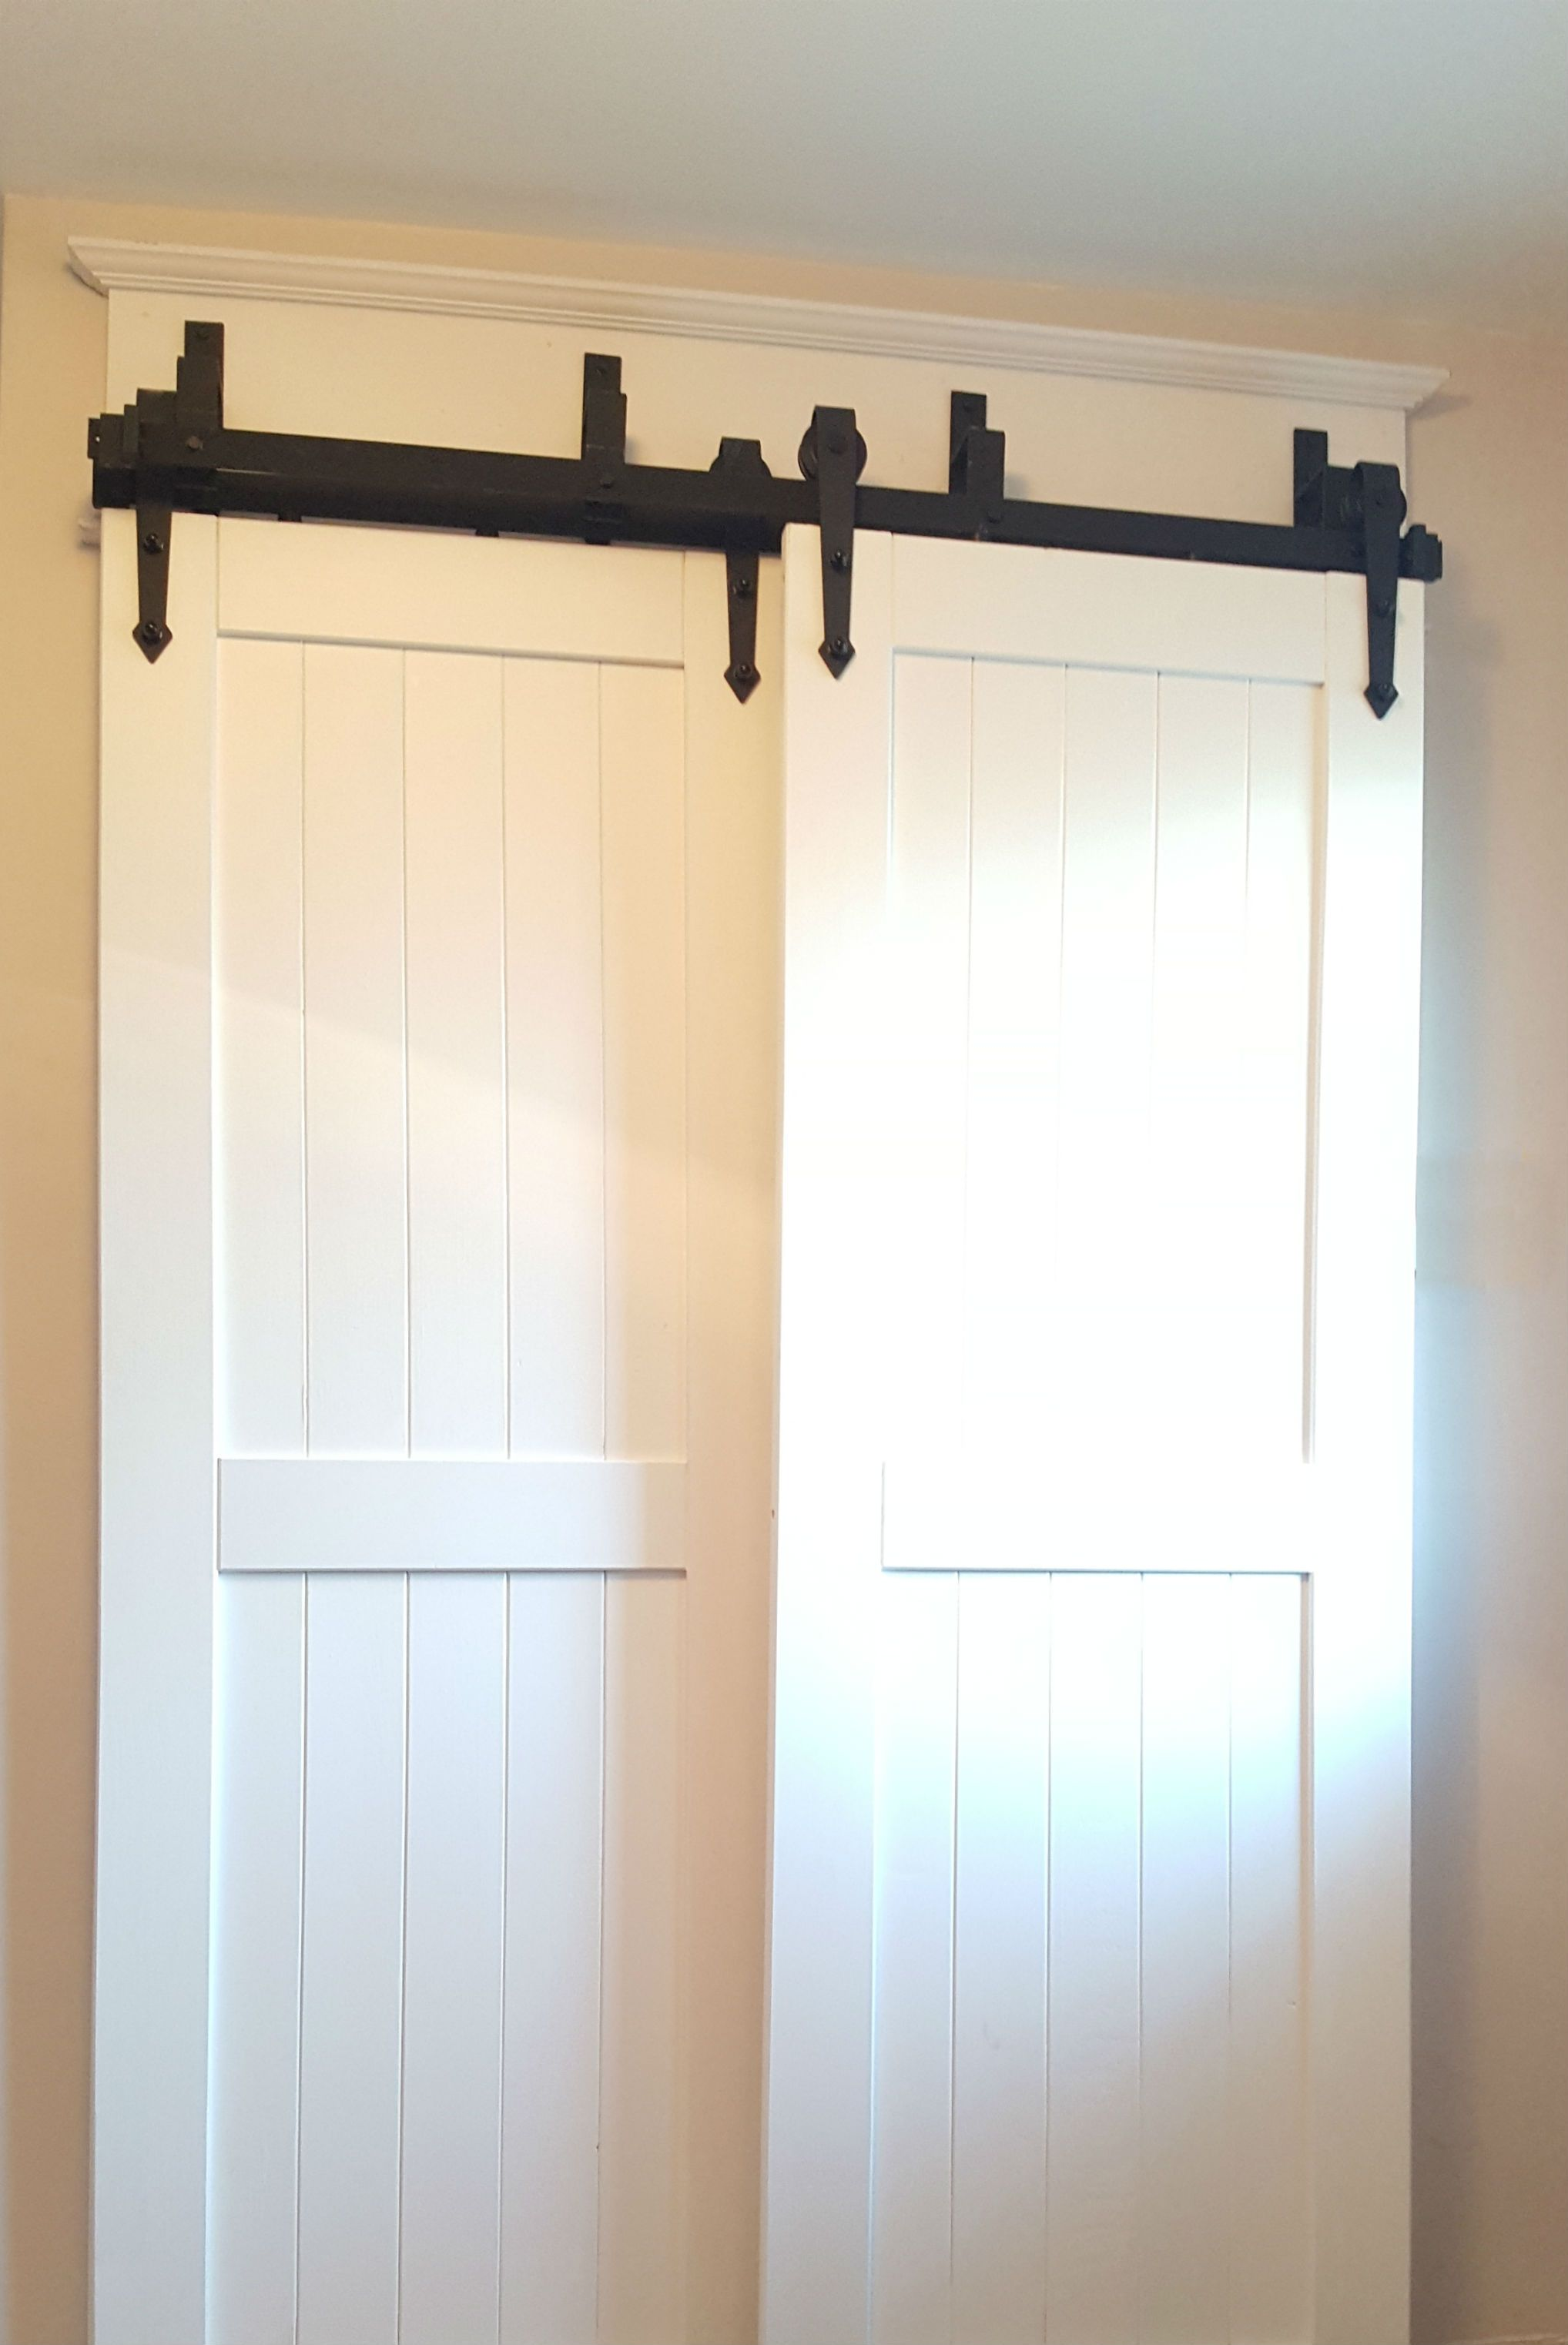 door hardware barn p a closet sliding hanging beautiful on doors